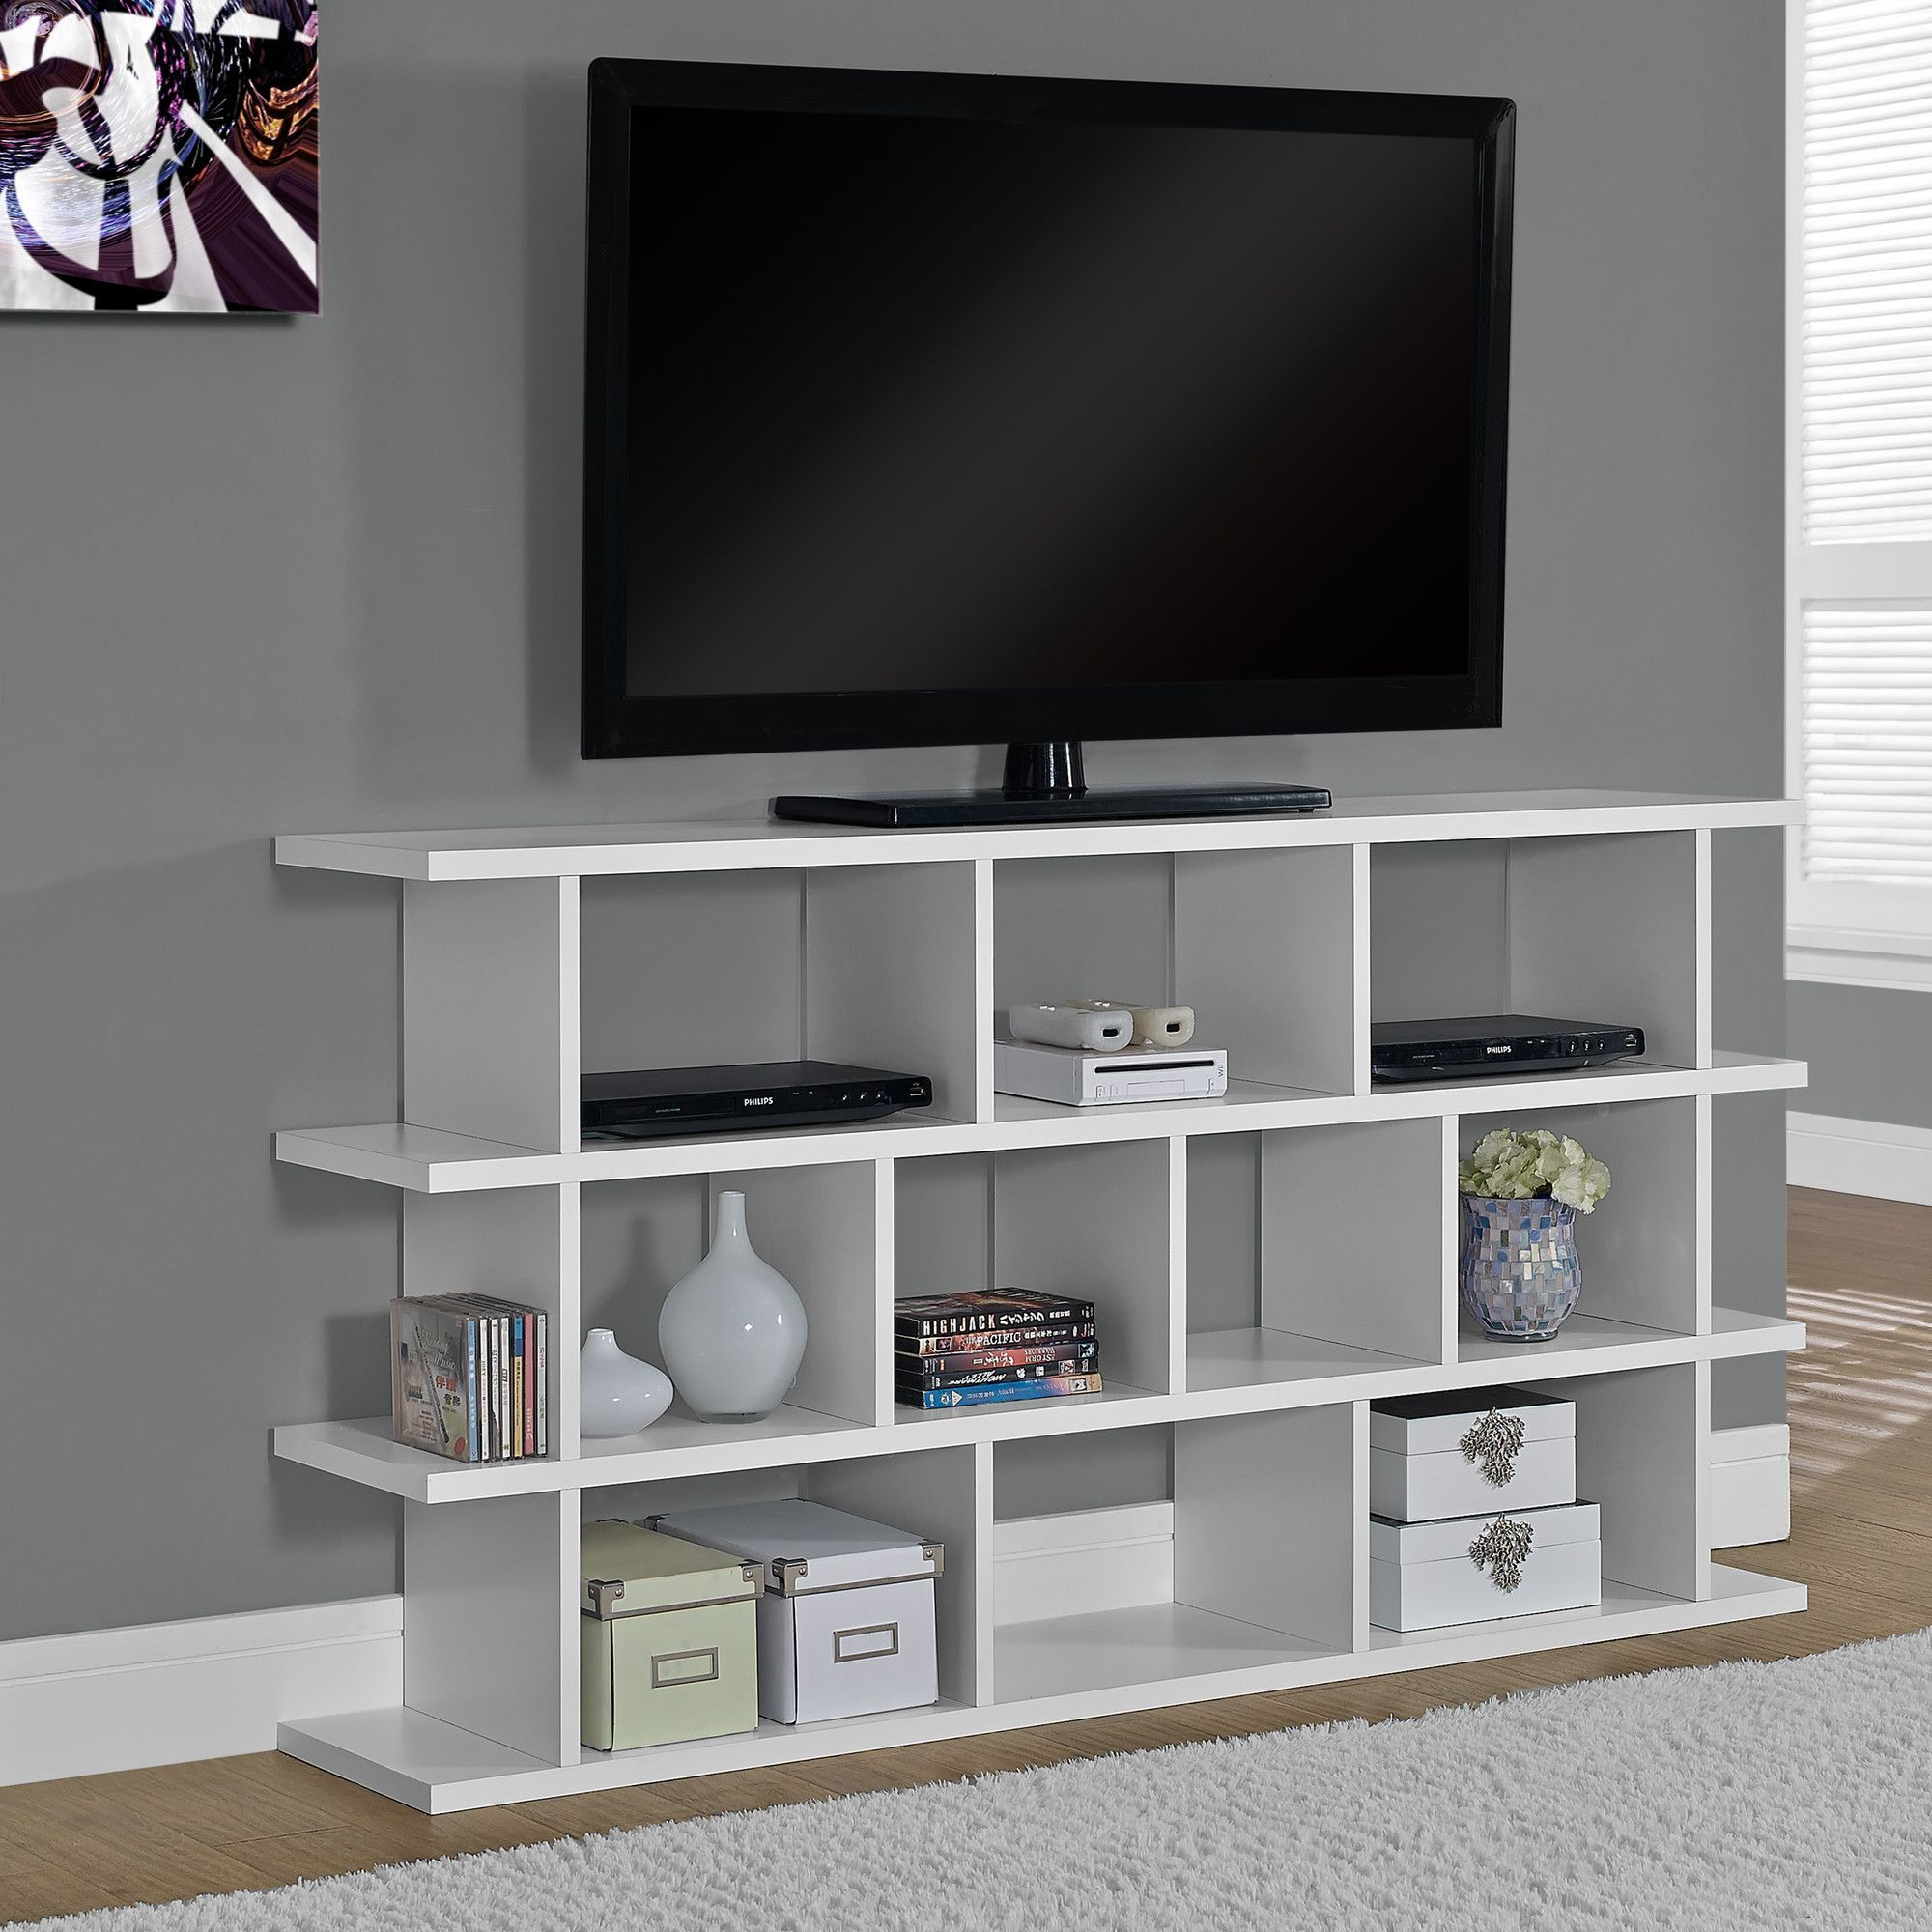 White Hollow core Horizontal Vertical Etagere